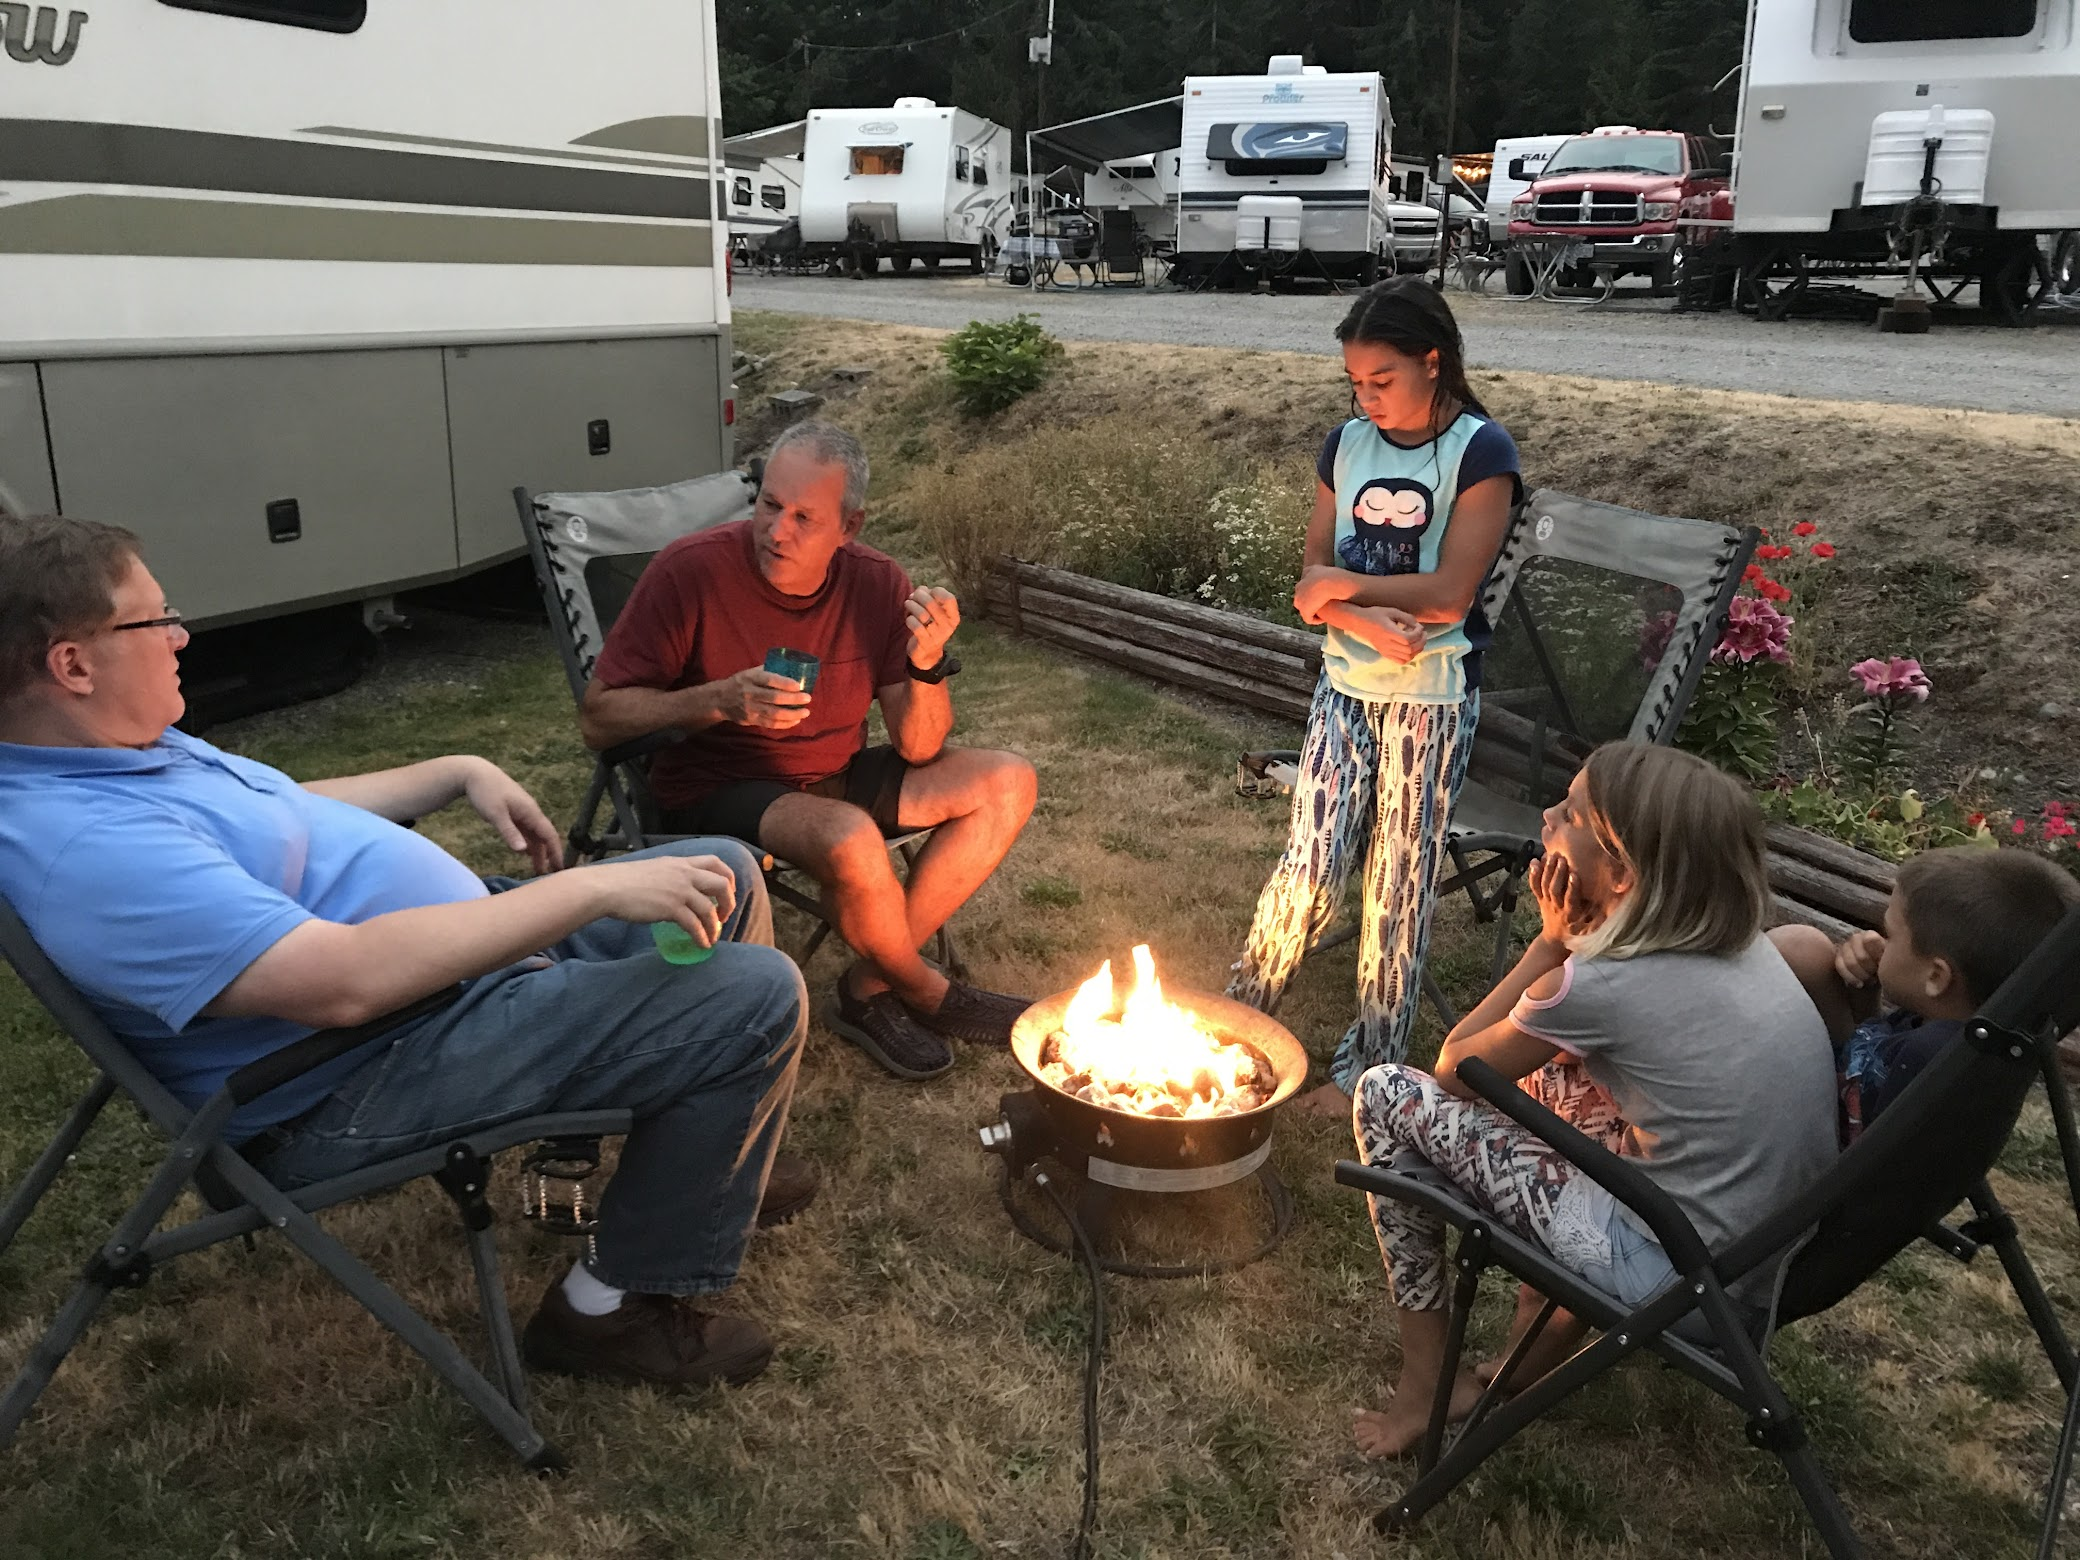 Campfire at John Wayne Campground in Sequim, Washington.